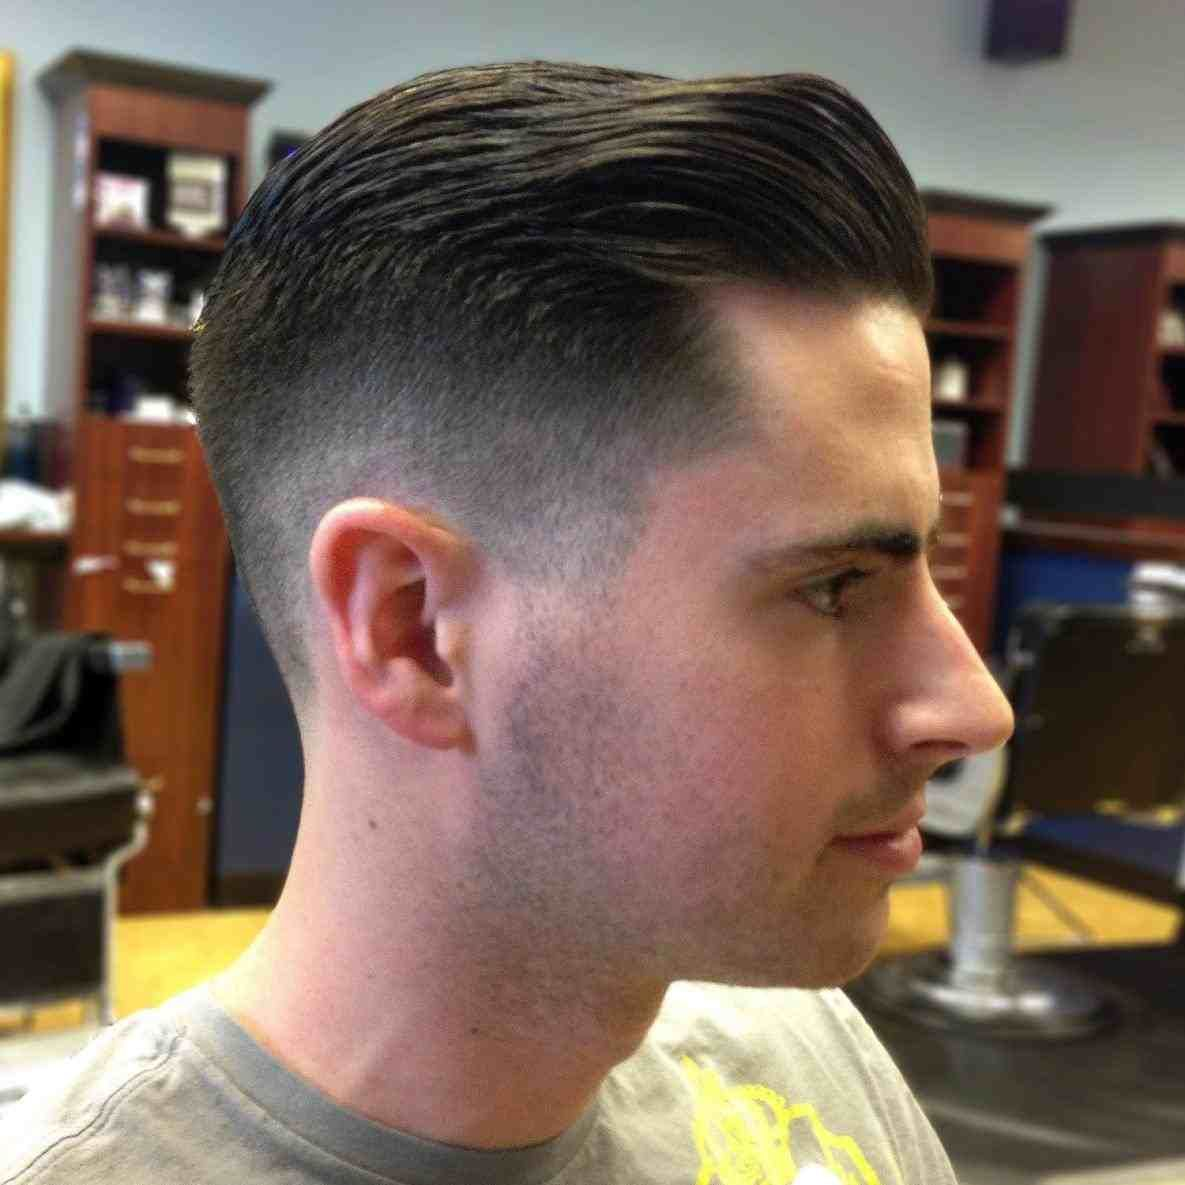 Balayagehair Club Nbspthis Website Is For Sale Nbspbalayagehair Resources And Information Tapered Haircut Mens Hairstyles Short Cool Short Hairstyles